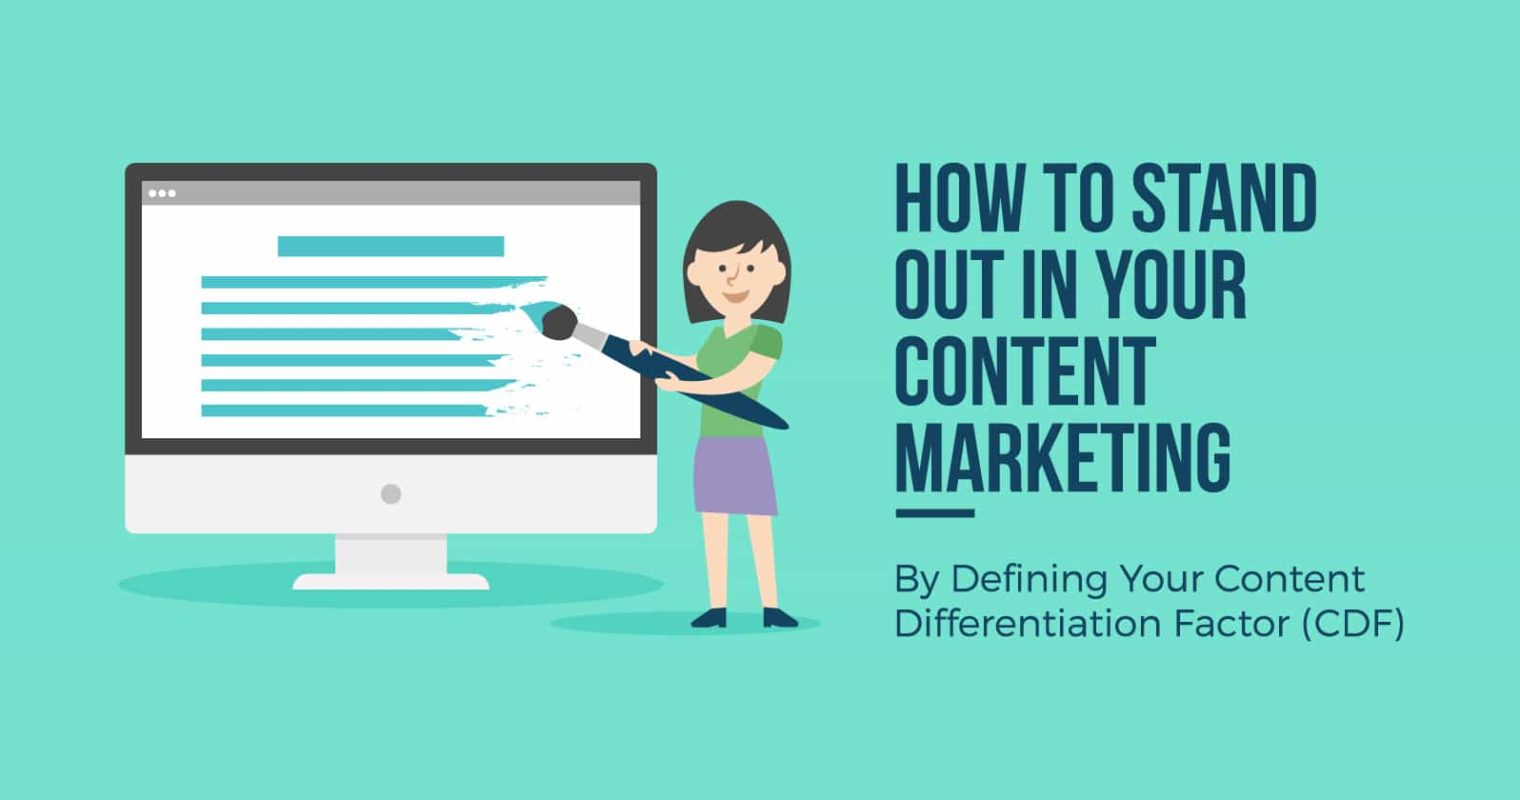 3 Ways to Make Your Content Stand Out